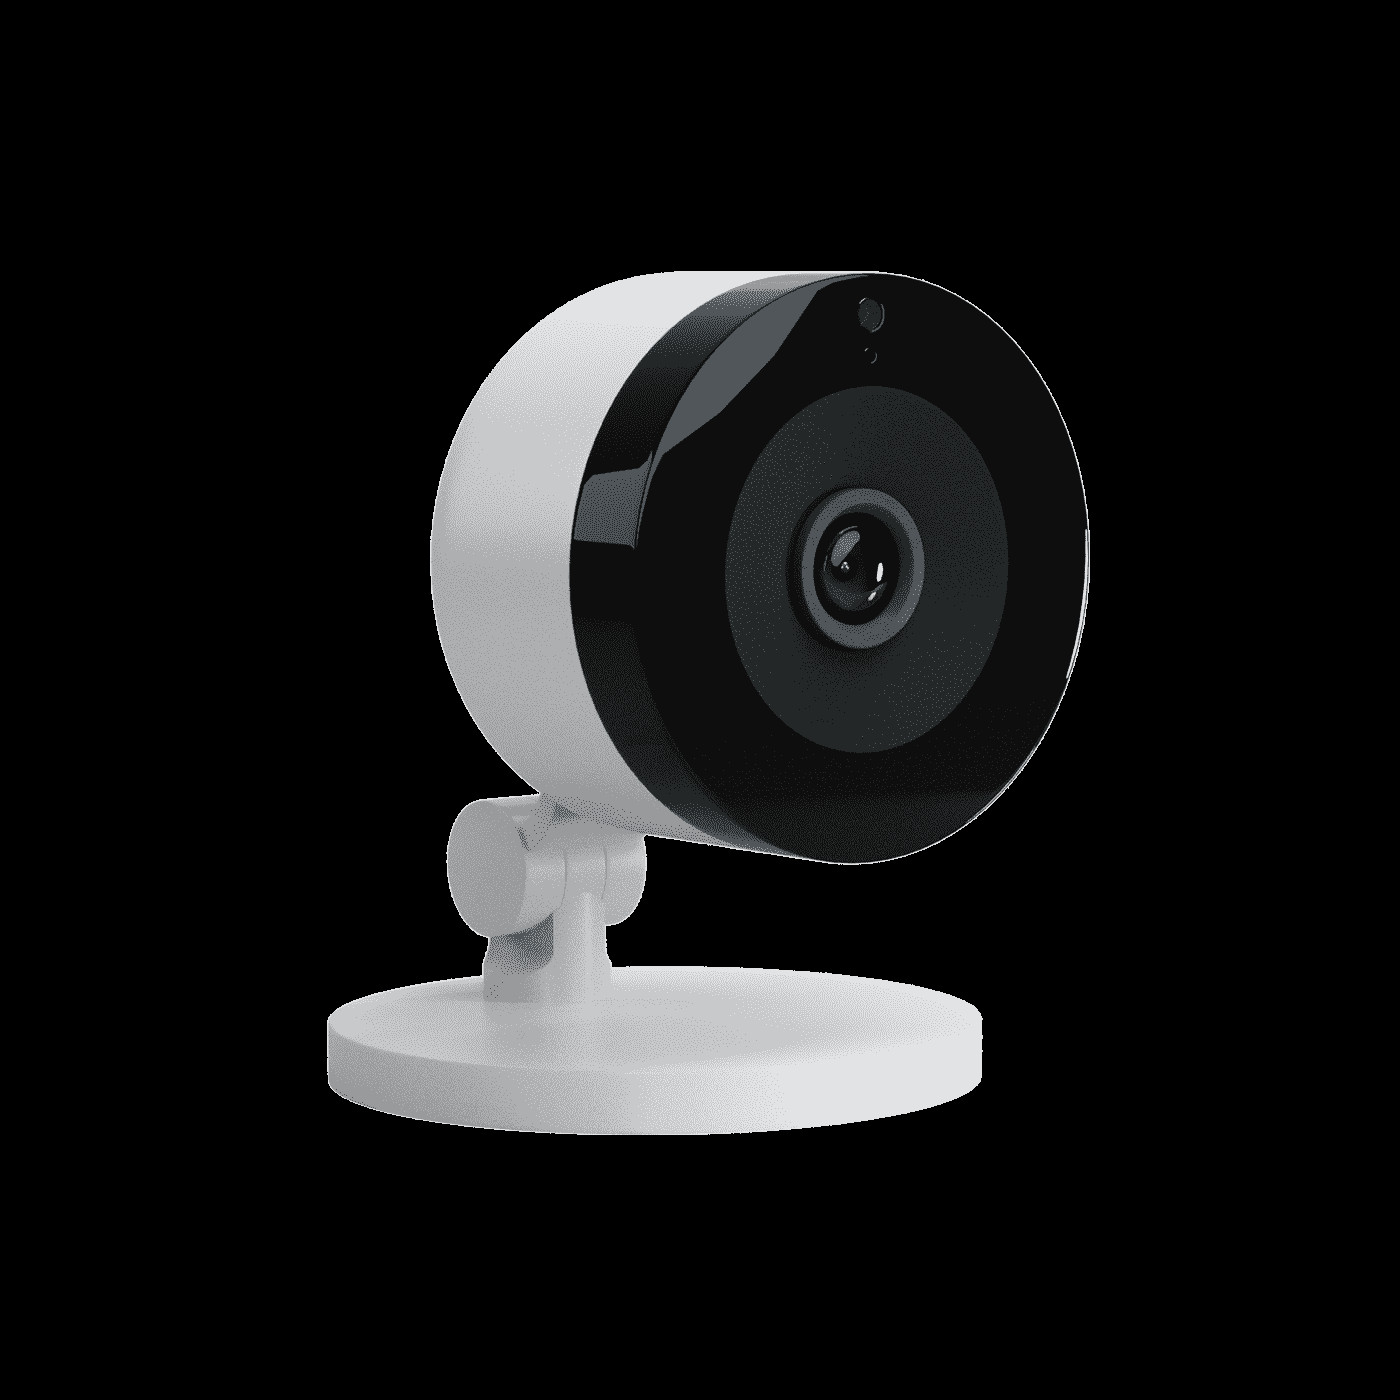 DIY Home Security Systems With Cameras  Frontpoint Wireless Indoor Camera Review DIY Home